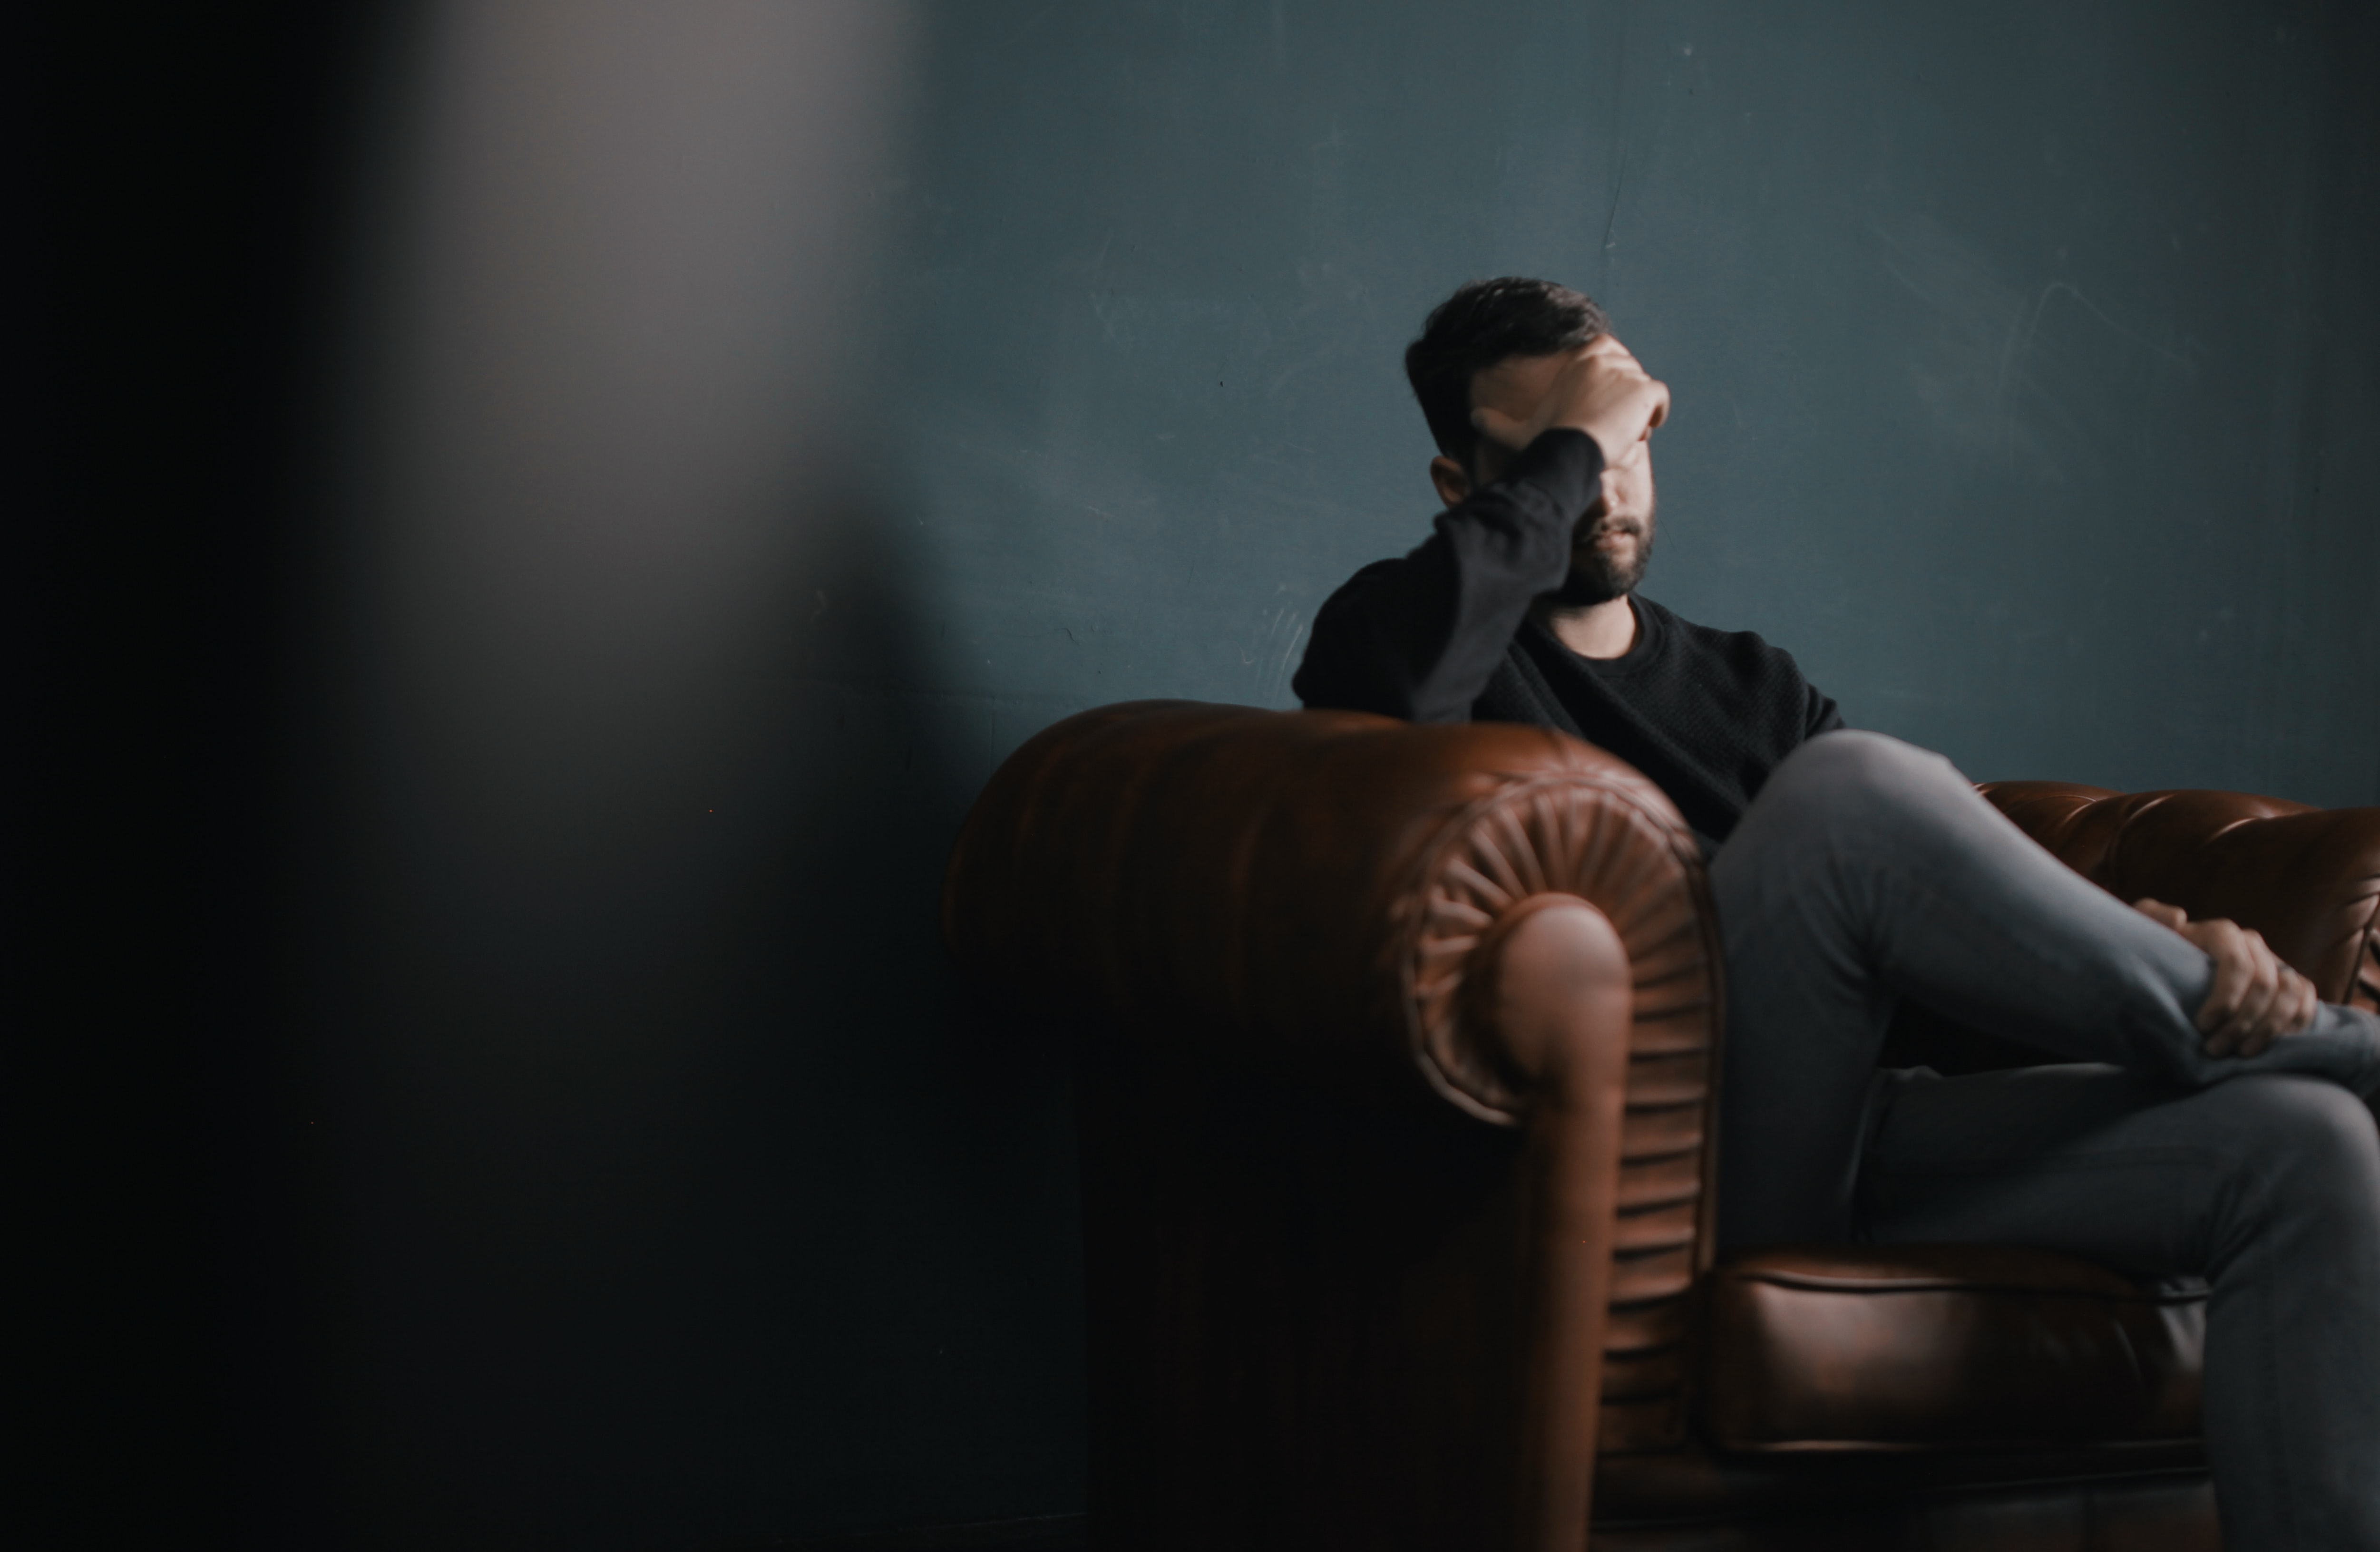 View on the Mental Health of Young Adults